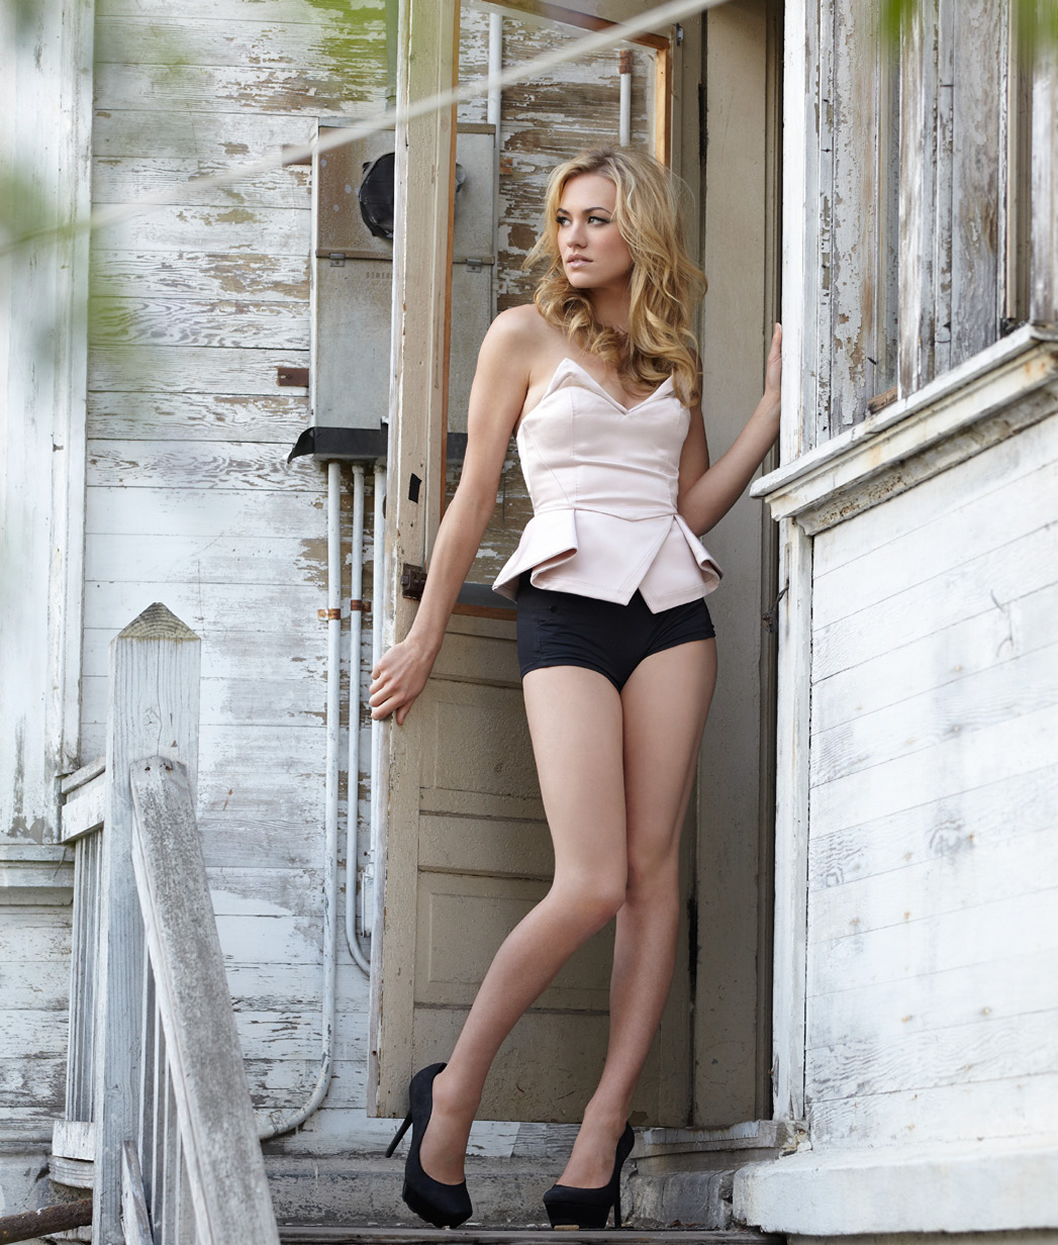 The 15 Hottest Yvonne Strahovski Pictures The Fappening Celebrity Nude Leaked Photos